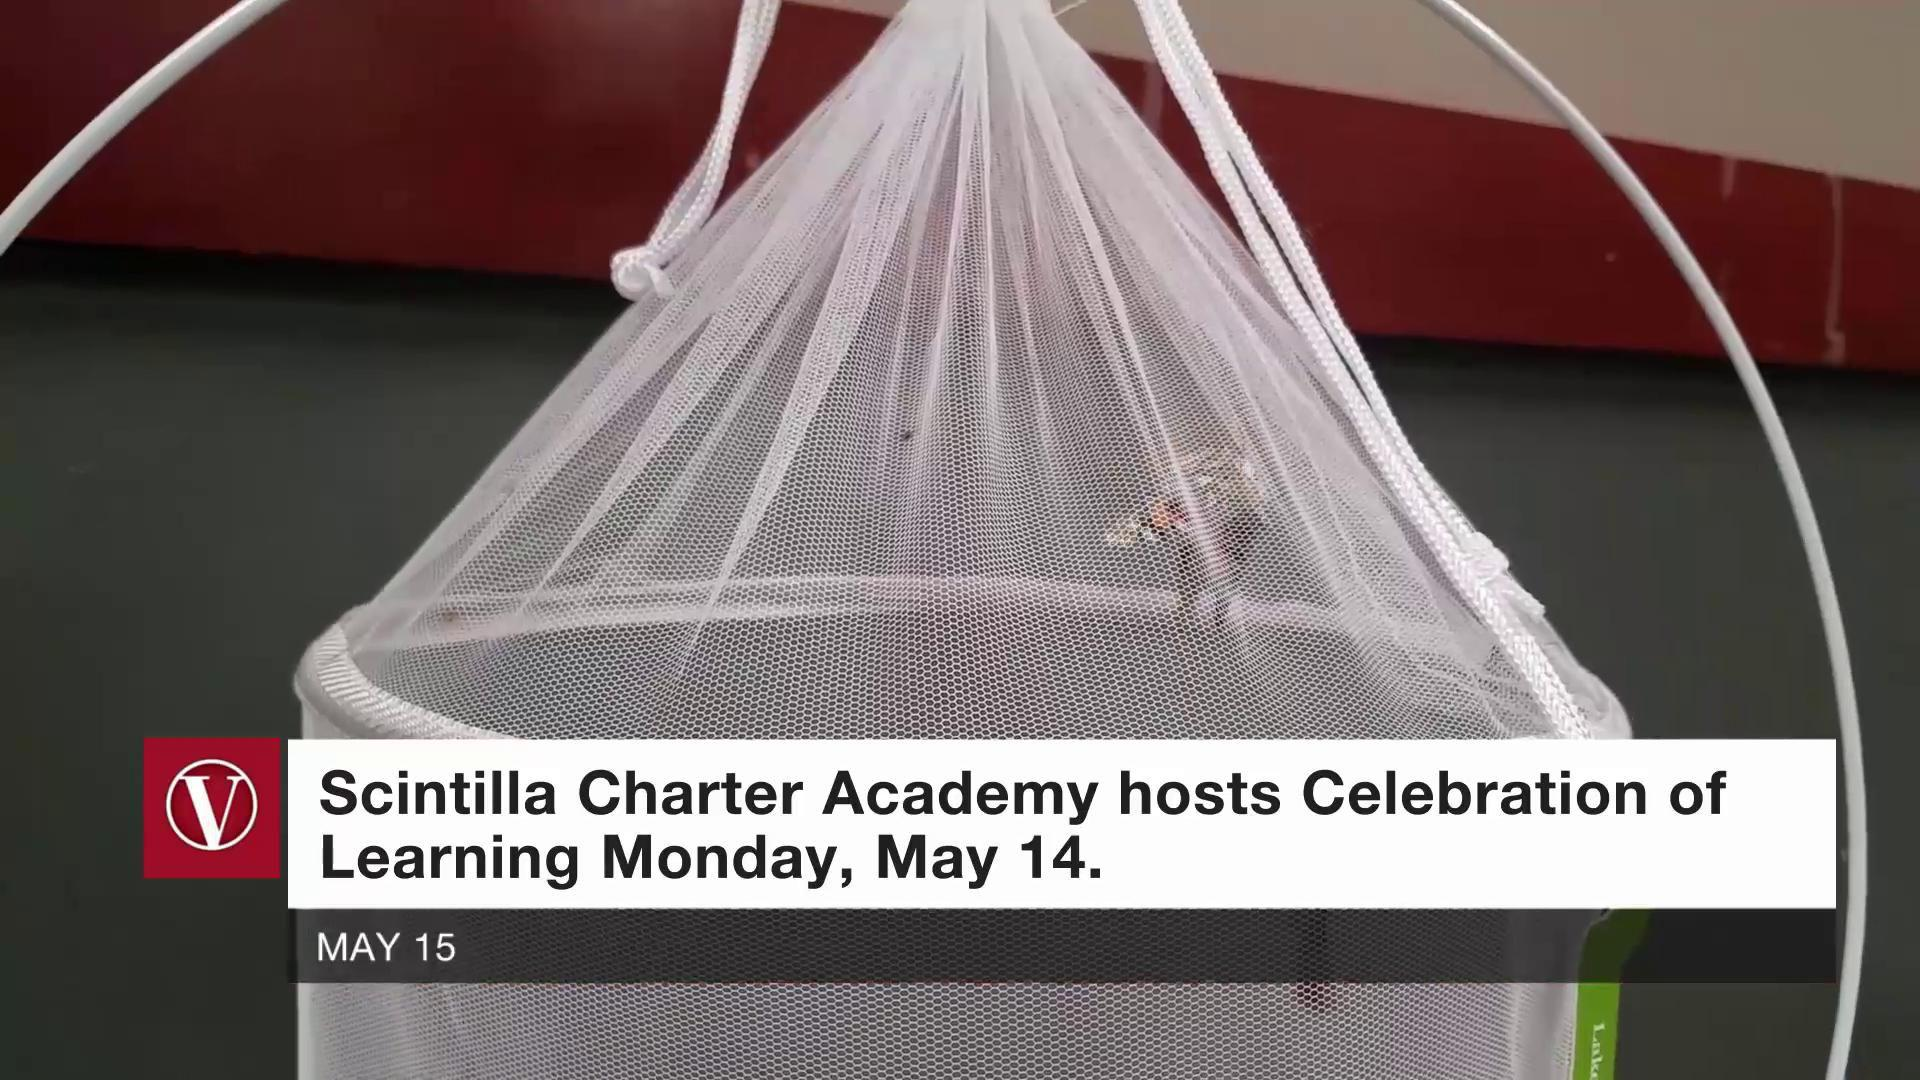 Scintilla Charter Academy held its Celebration of Learning Monday